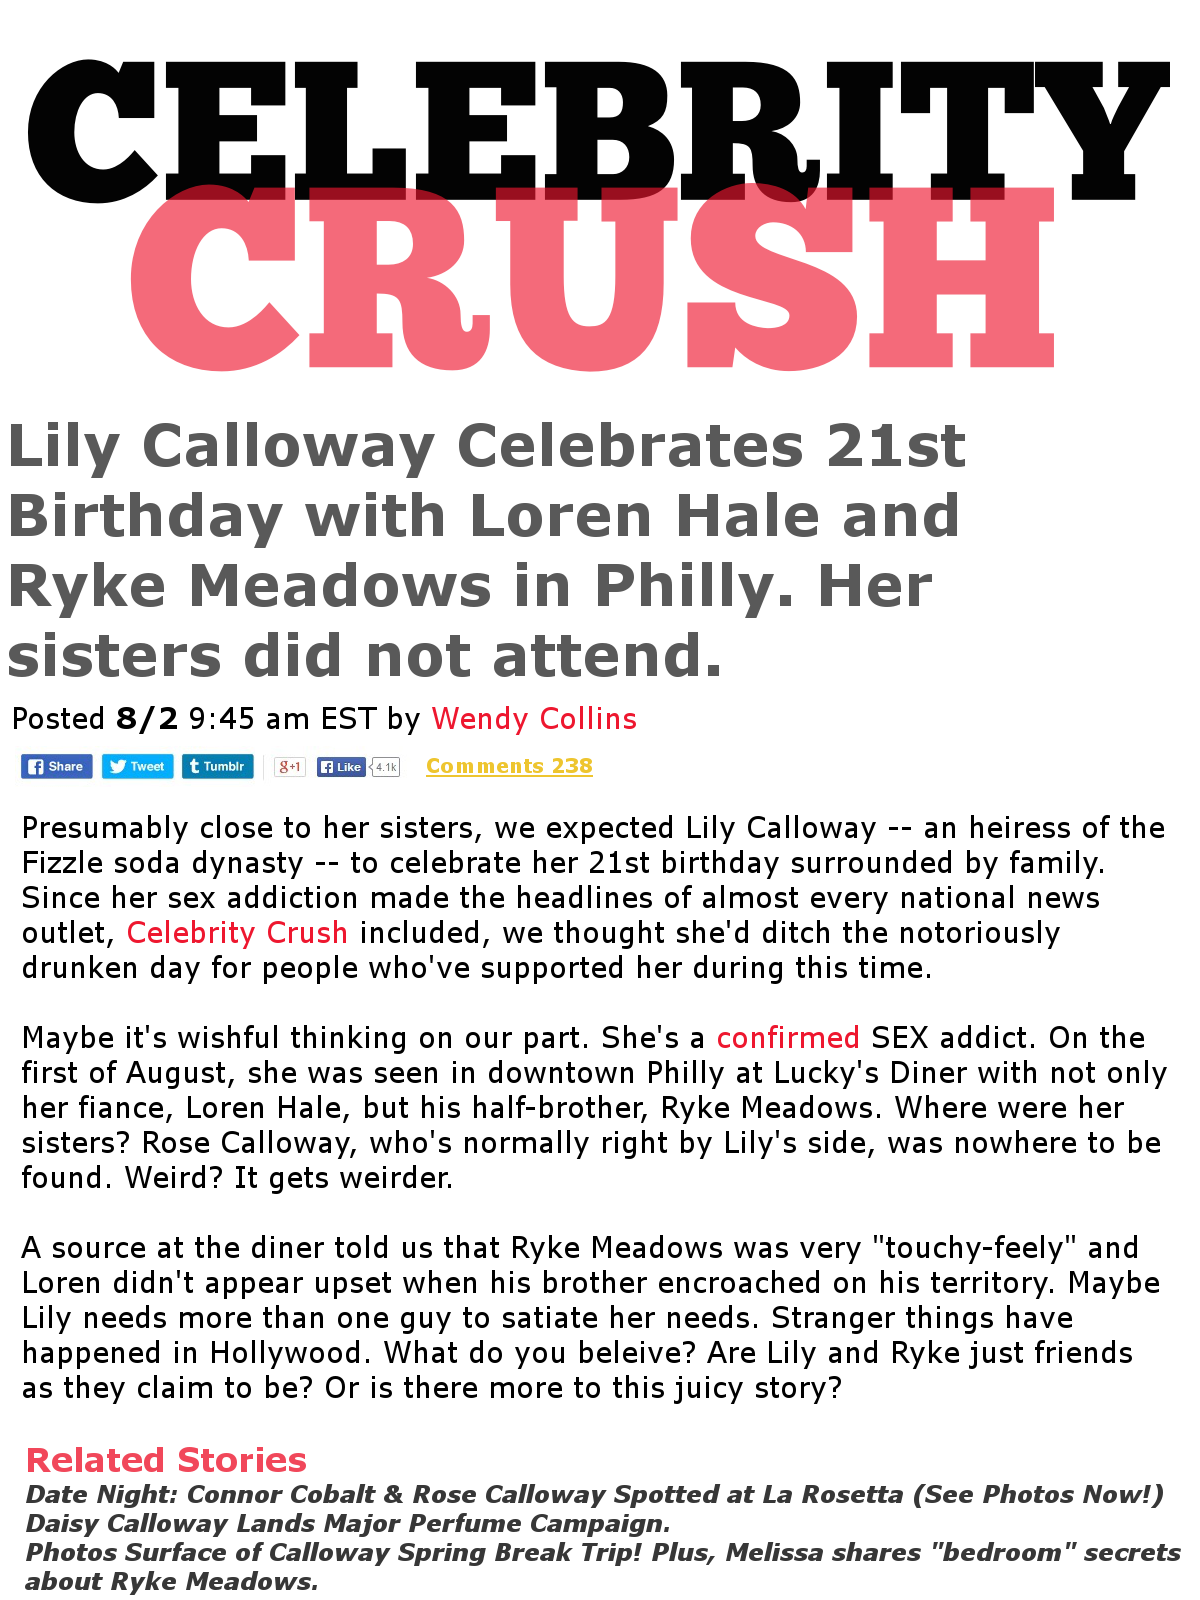 http://kbritchie.com/2/post/2014/06/tabloid-news-celebrity-crush-dishes-about-lily-calloways-21st-birthday.html